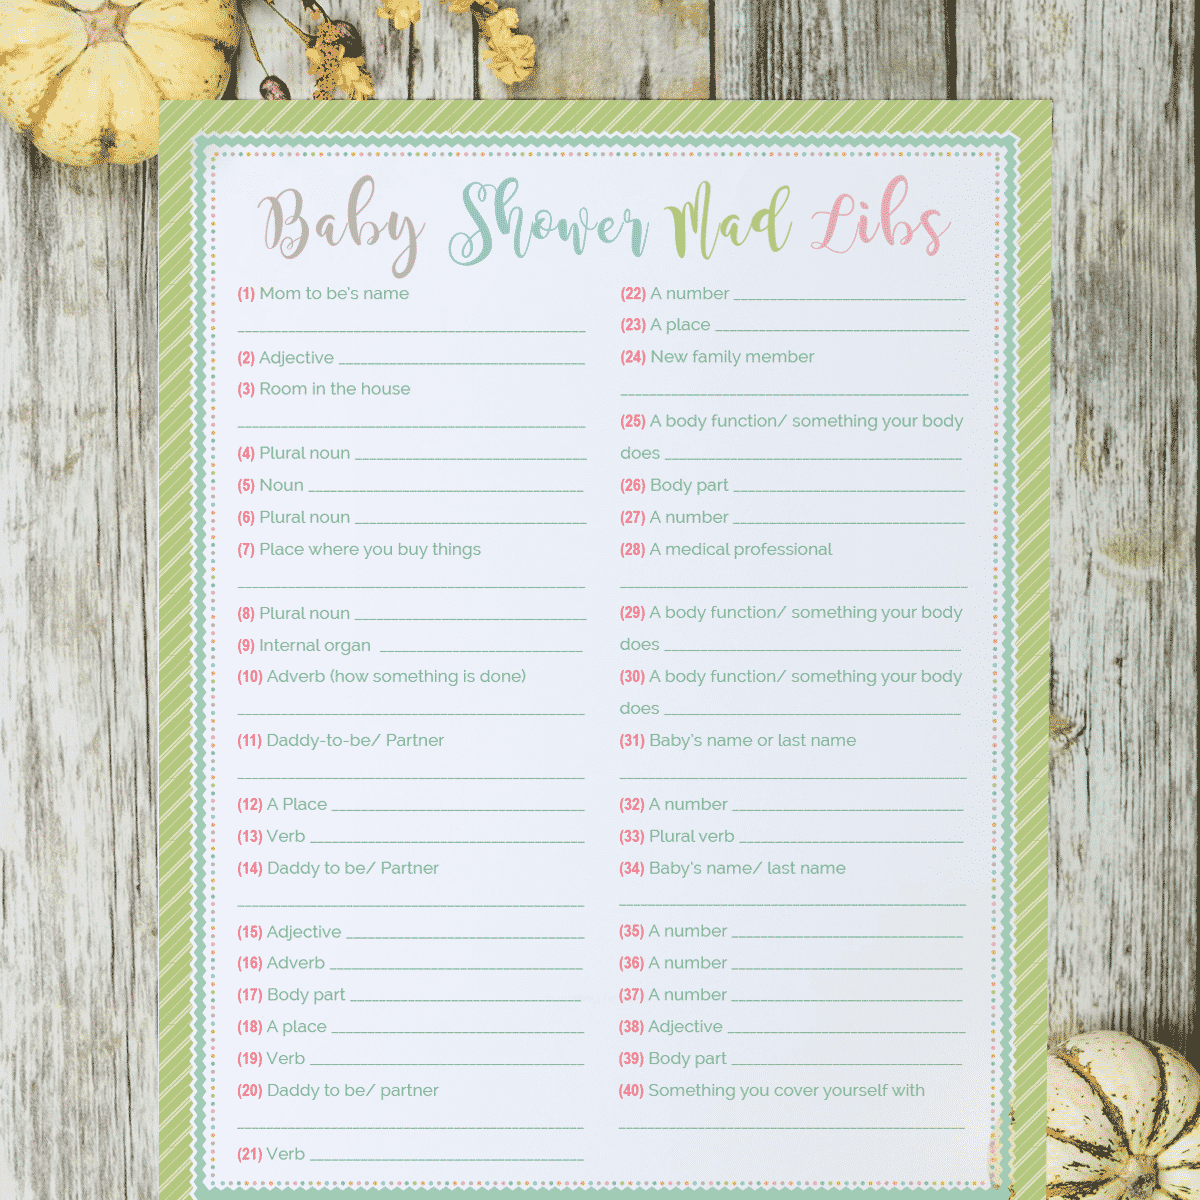 Baby Shower Mad Libs Free Printable